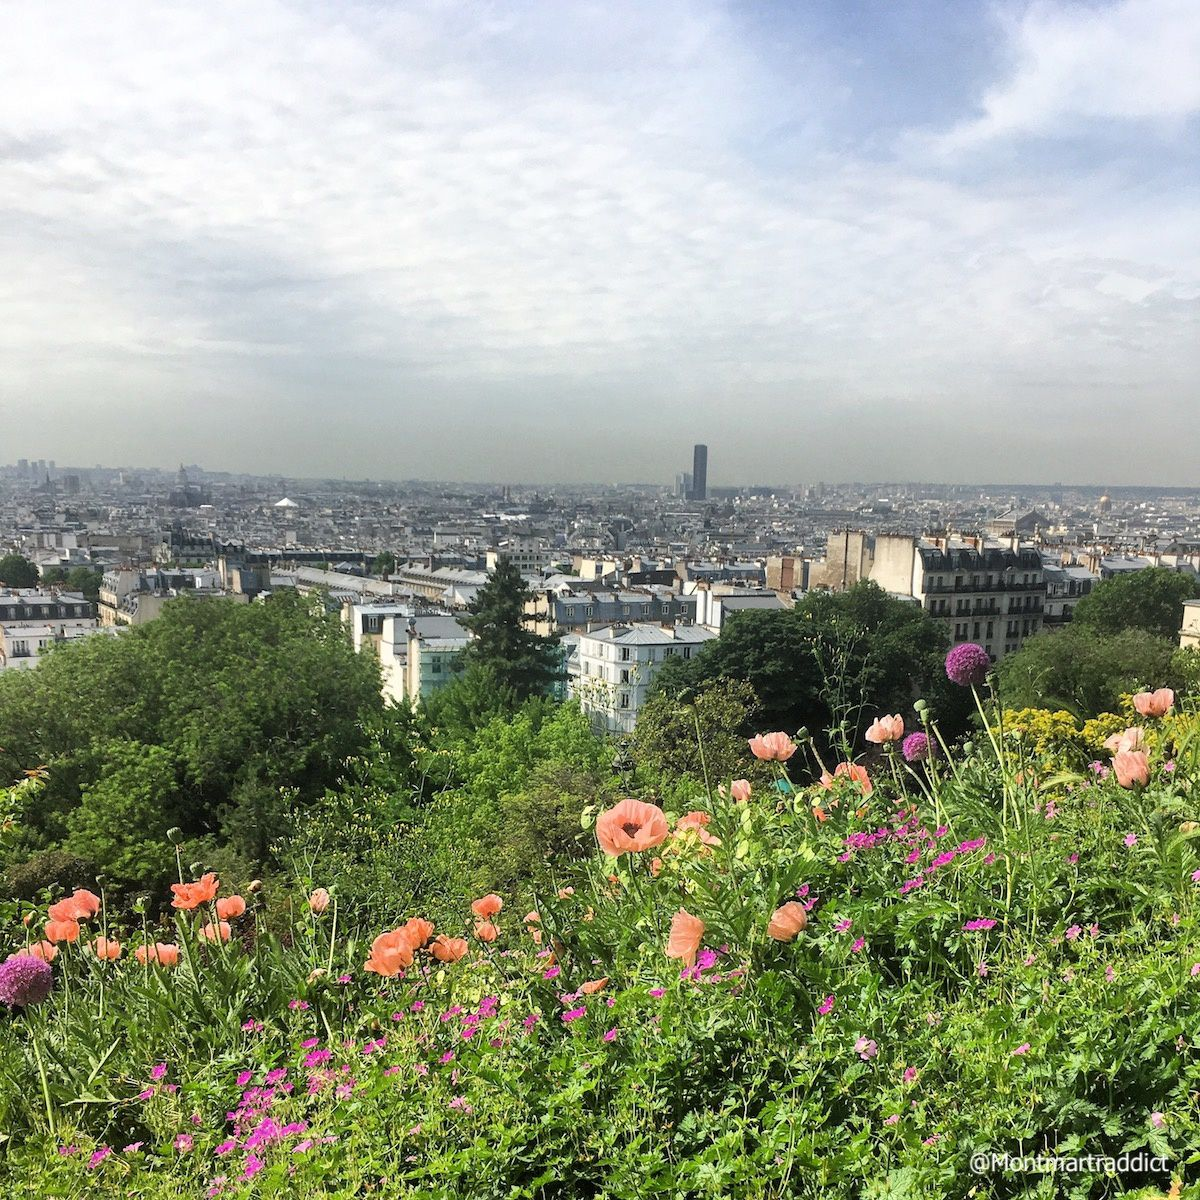 03. From Montmartre with love, 75018